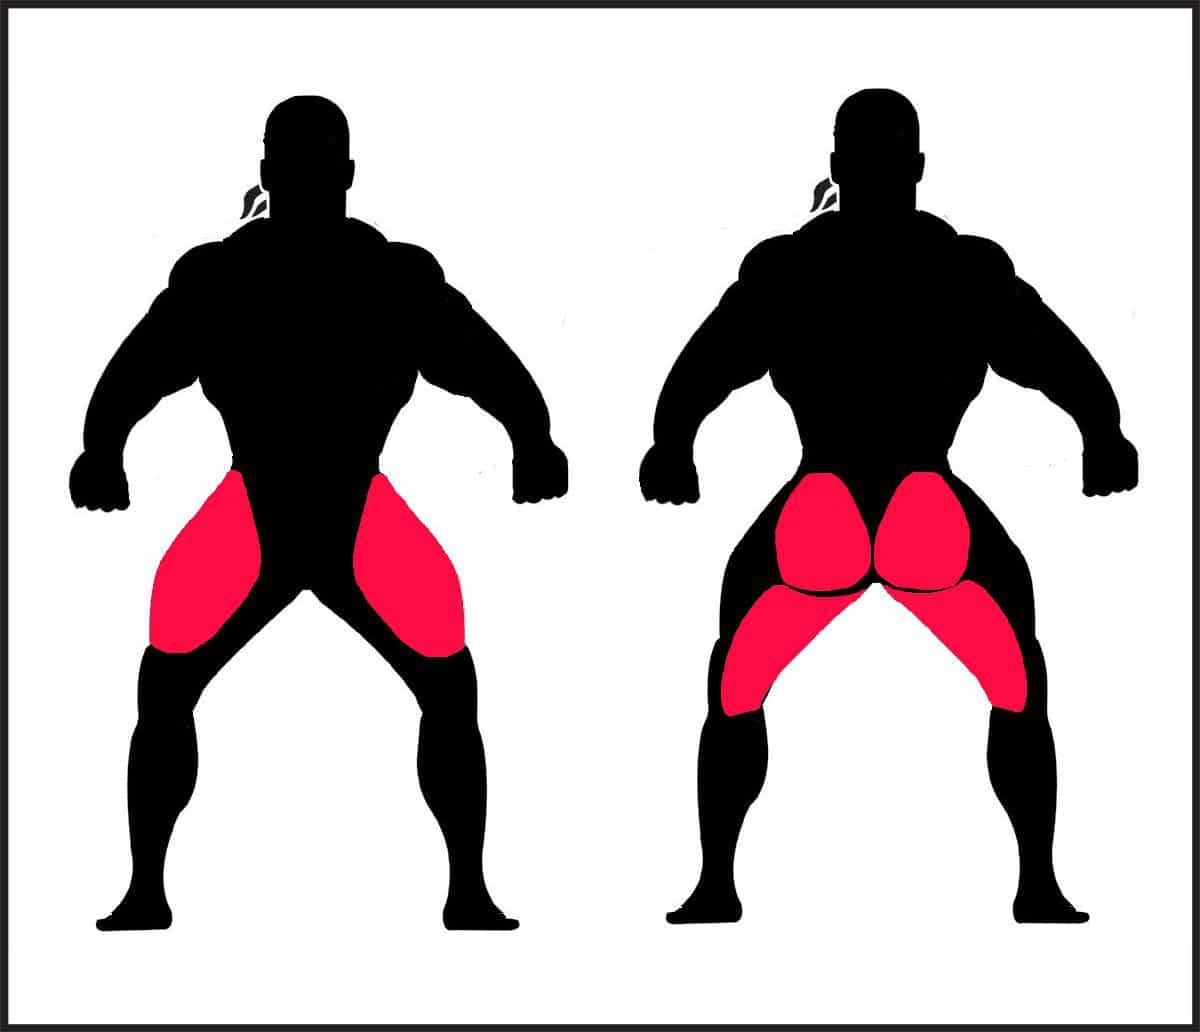 Deadlift Tips Brute Force Strength: Squats With Bands Brute Force Strength